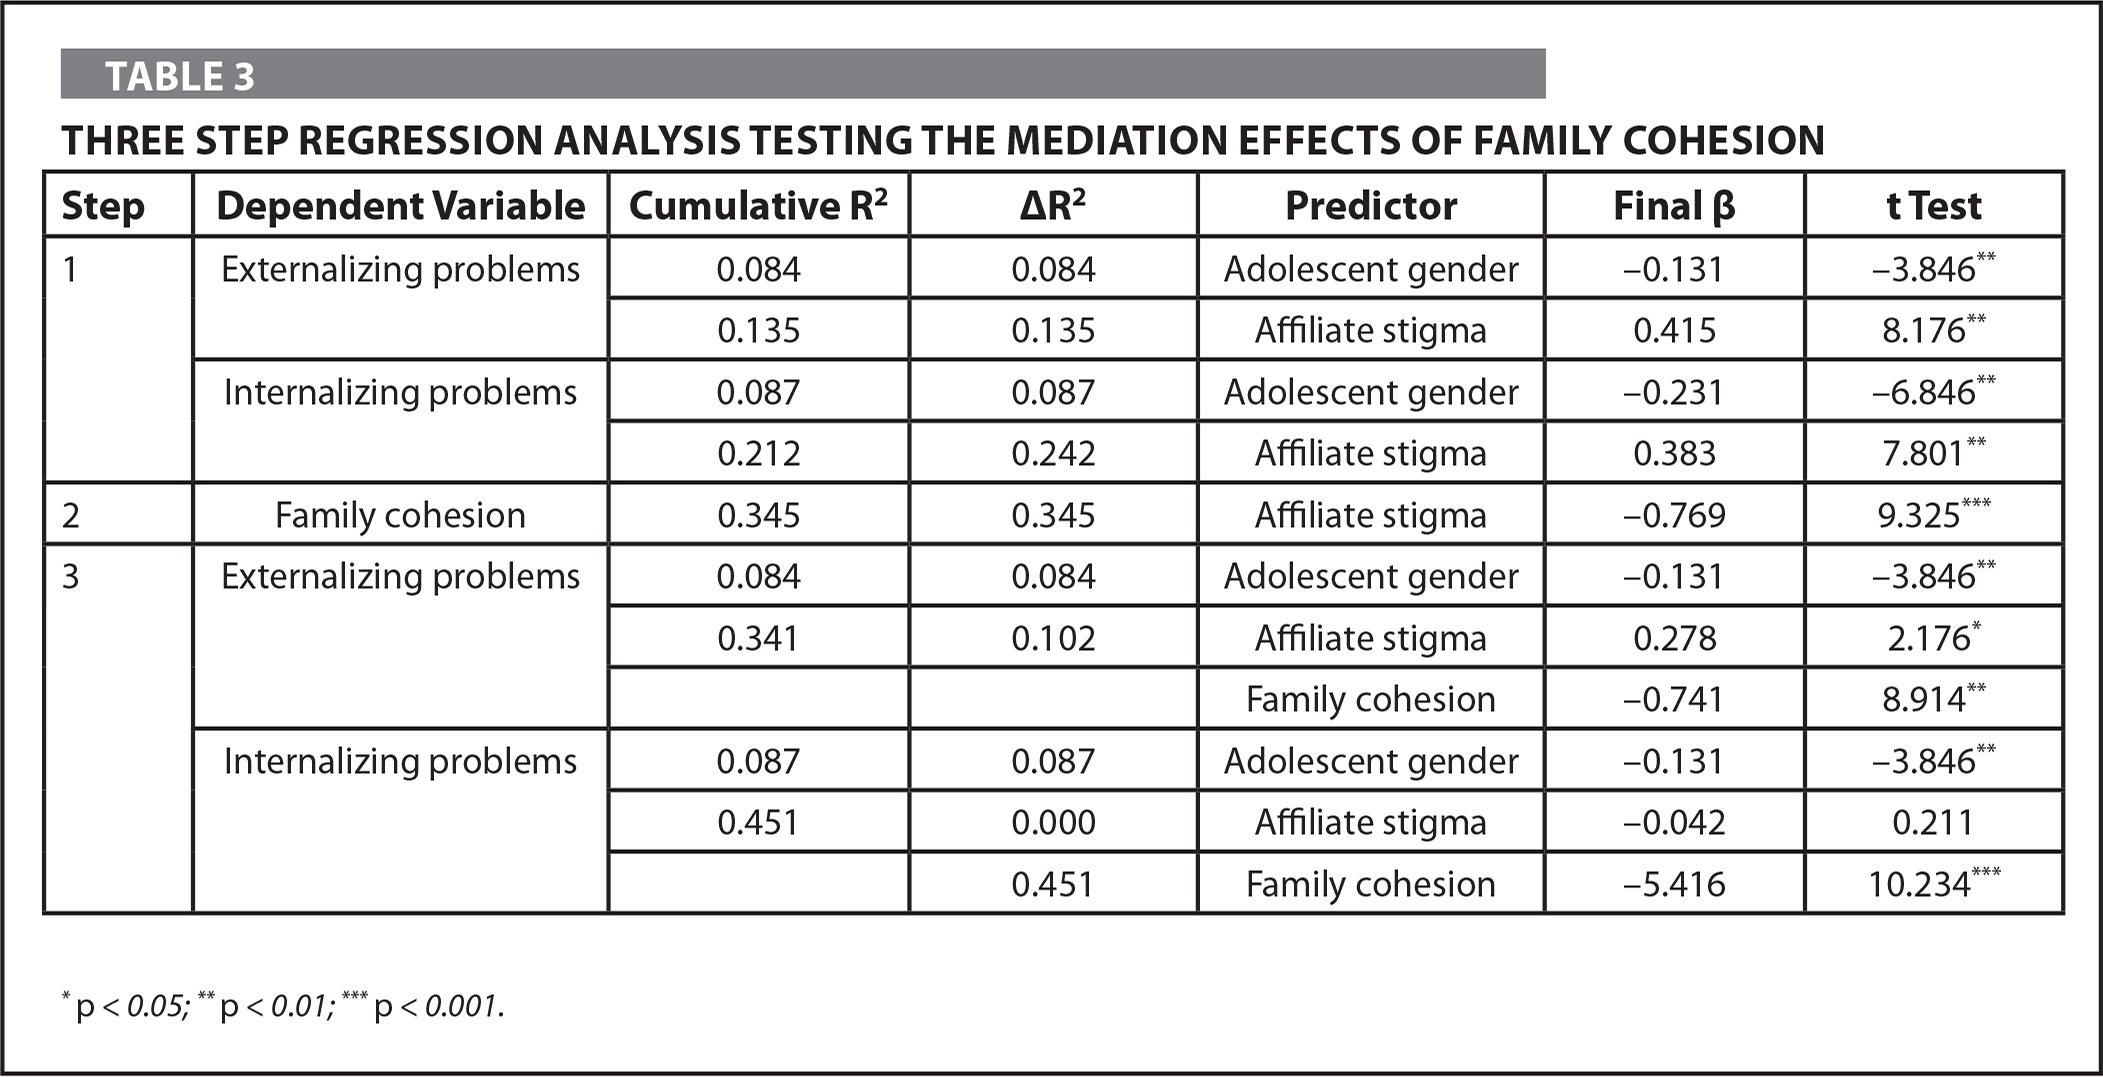 Three Step Regression Analysis Testing the Mediation Effects of Family Cohesion